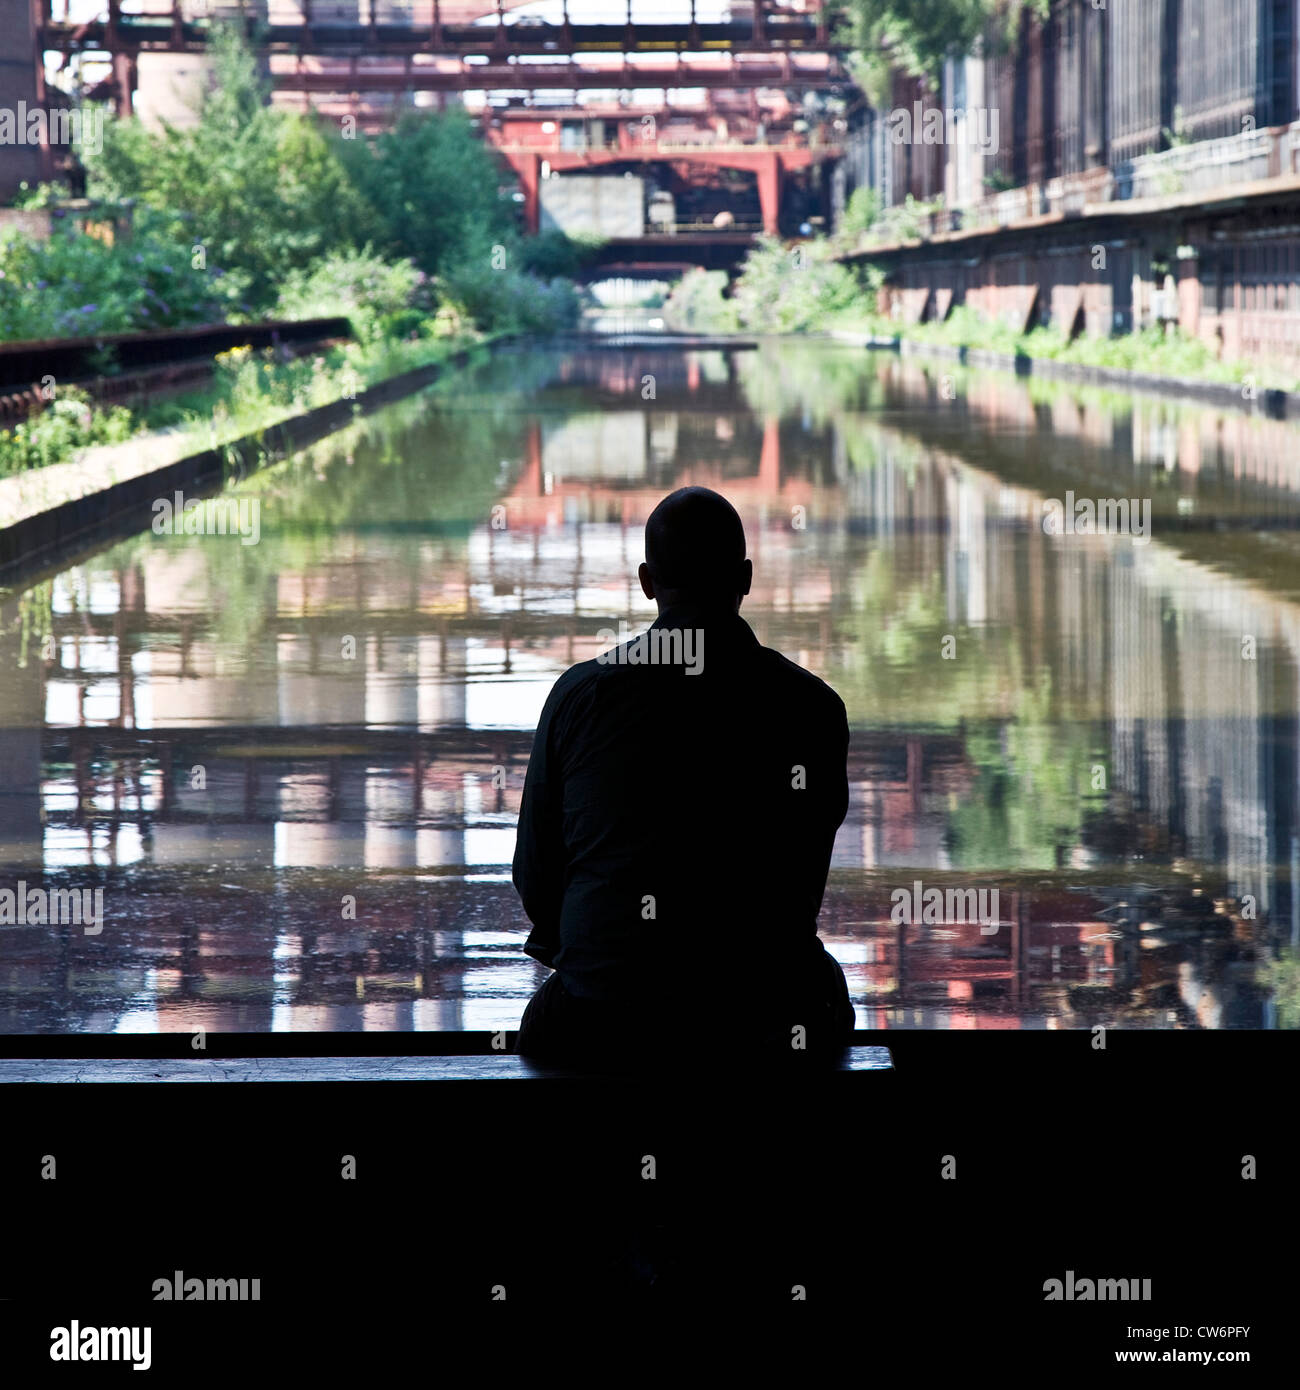 man looking at Kokerei Zollverein, Essen-Katernberg, Germany, North Rhine-Westphalia, Ruhr Area, Essen - Stock Image